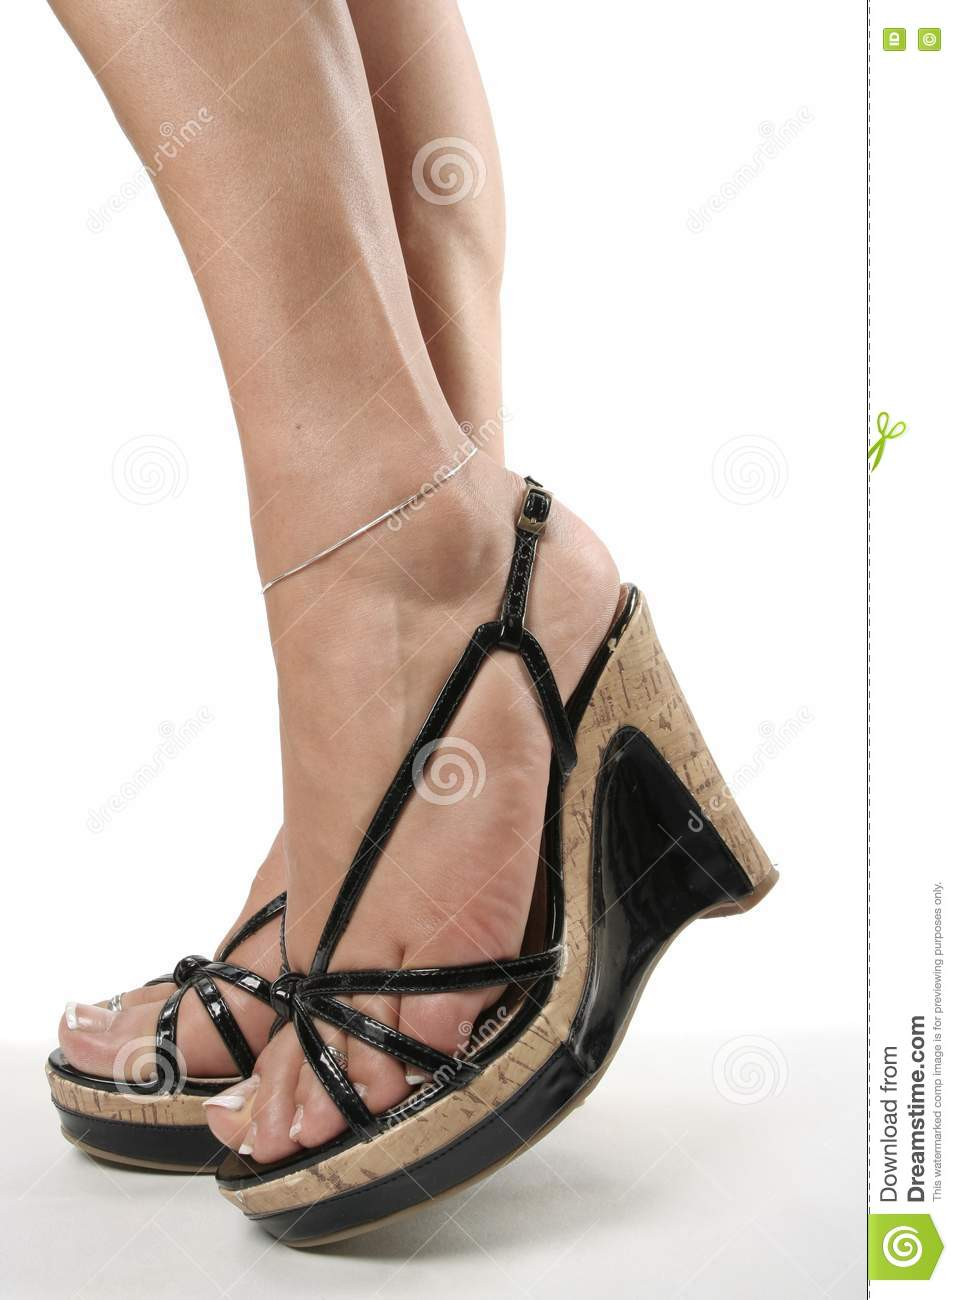 and legs with black high heel shoes stock image